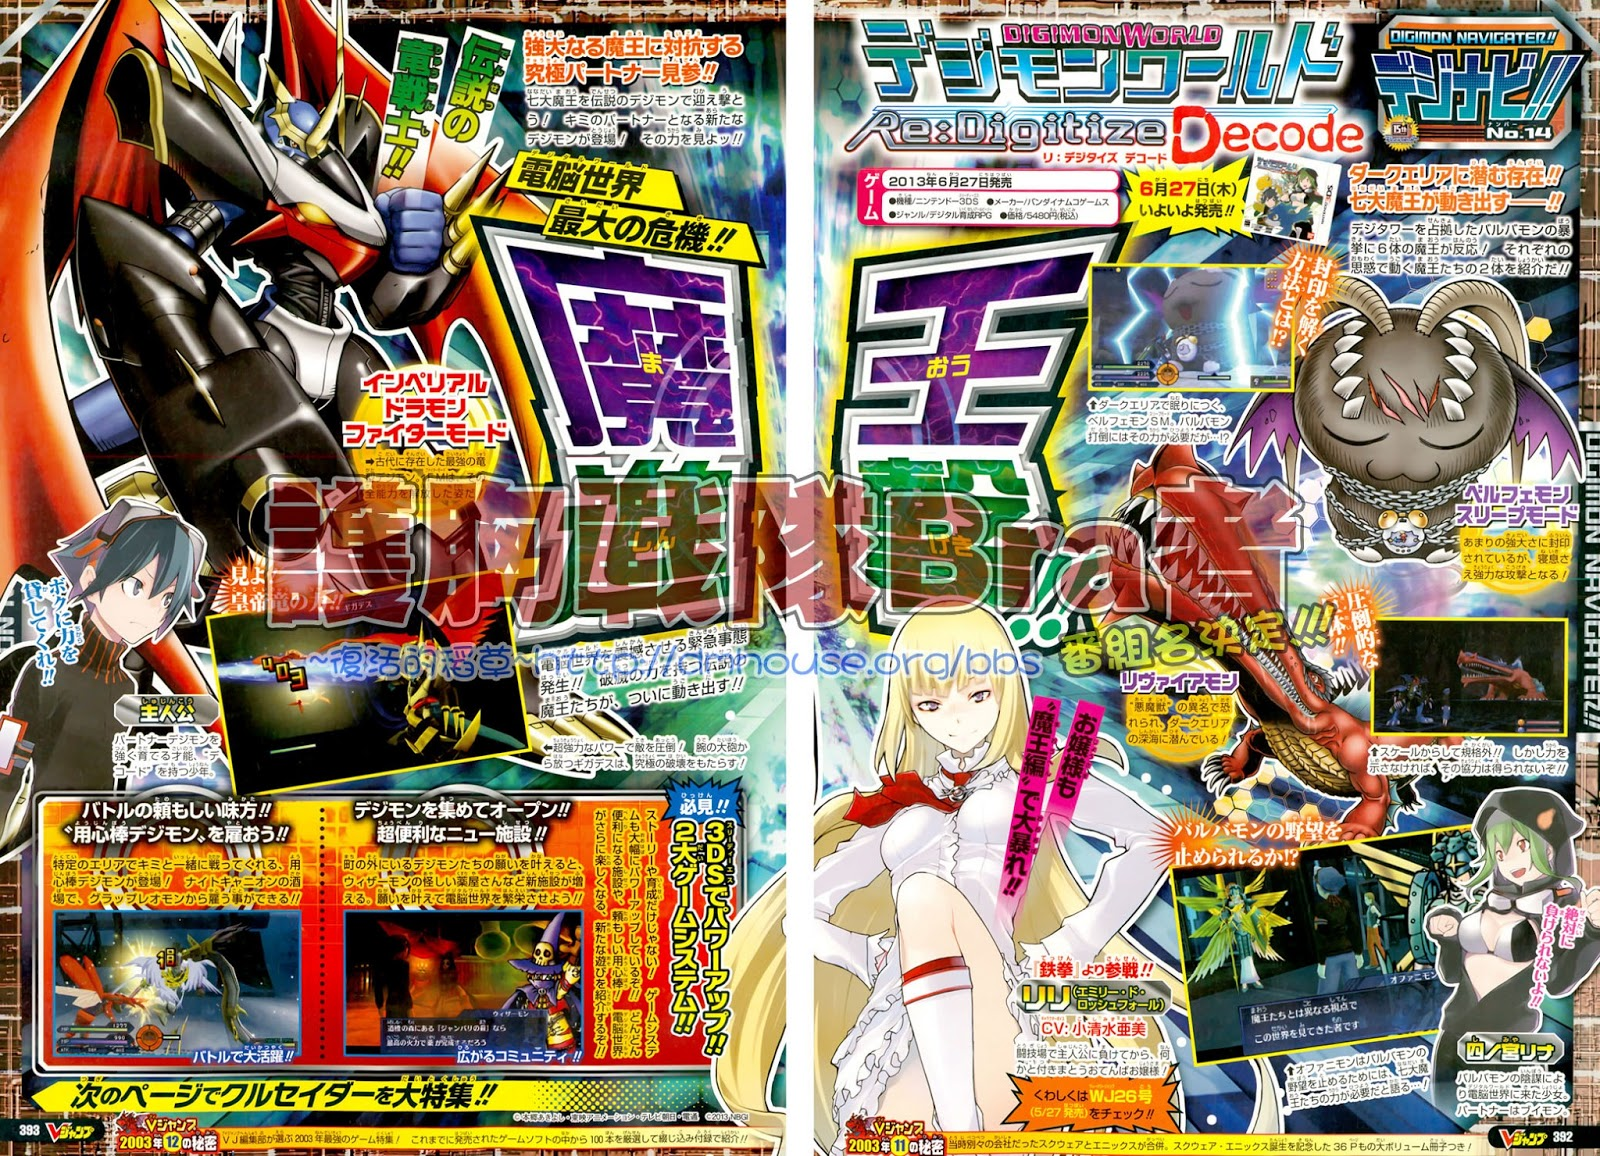 Re:Digitize Decode Updates and Manga [Archive] - With the